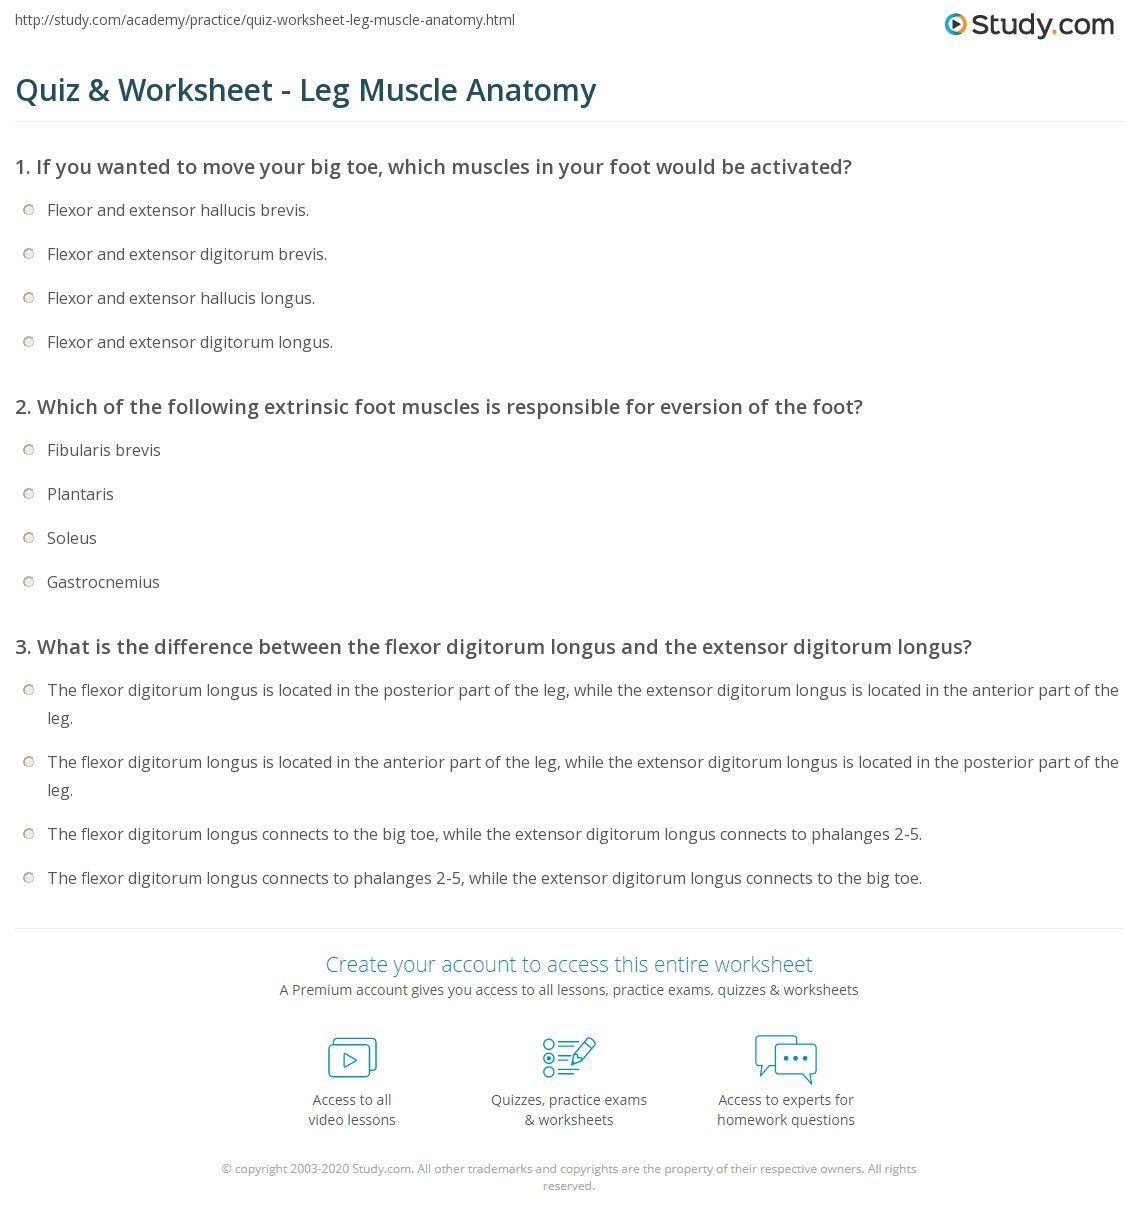 Quiz & Worksheet - Leg Muscle Anatomy | Study.com